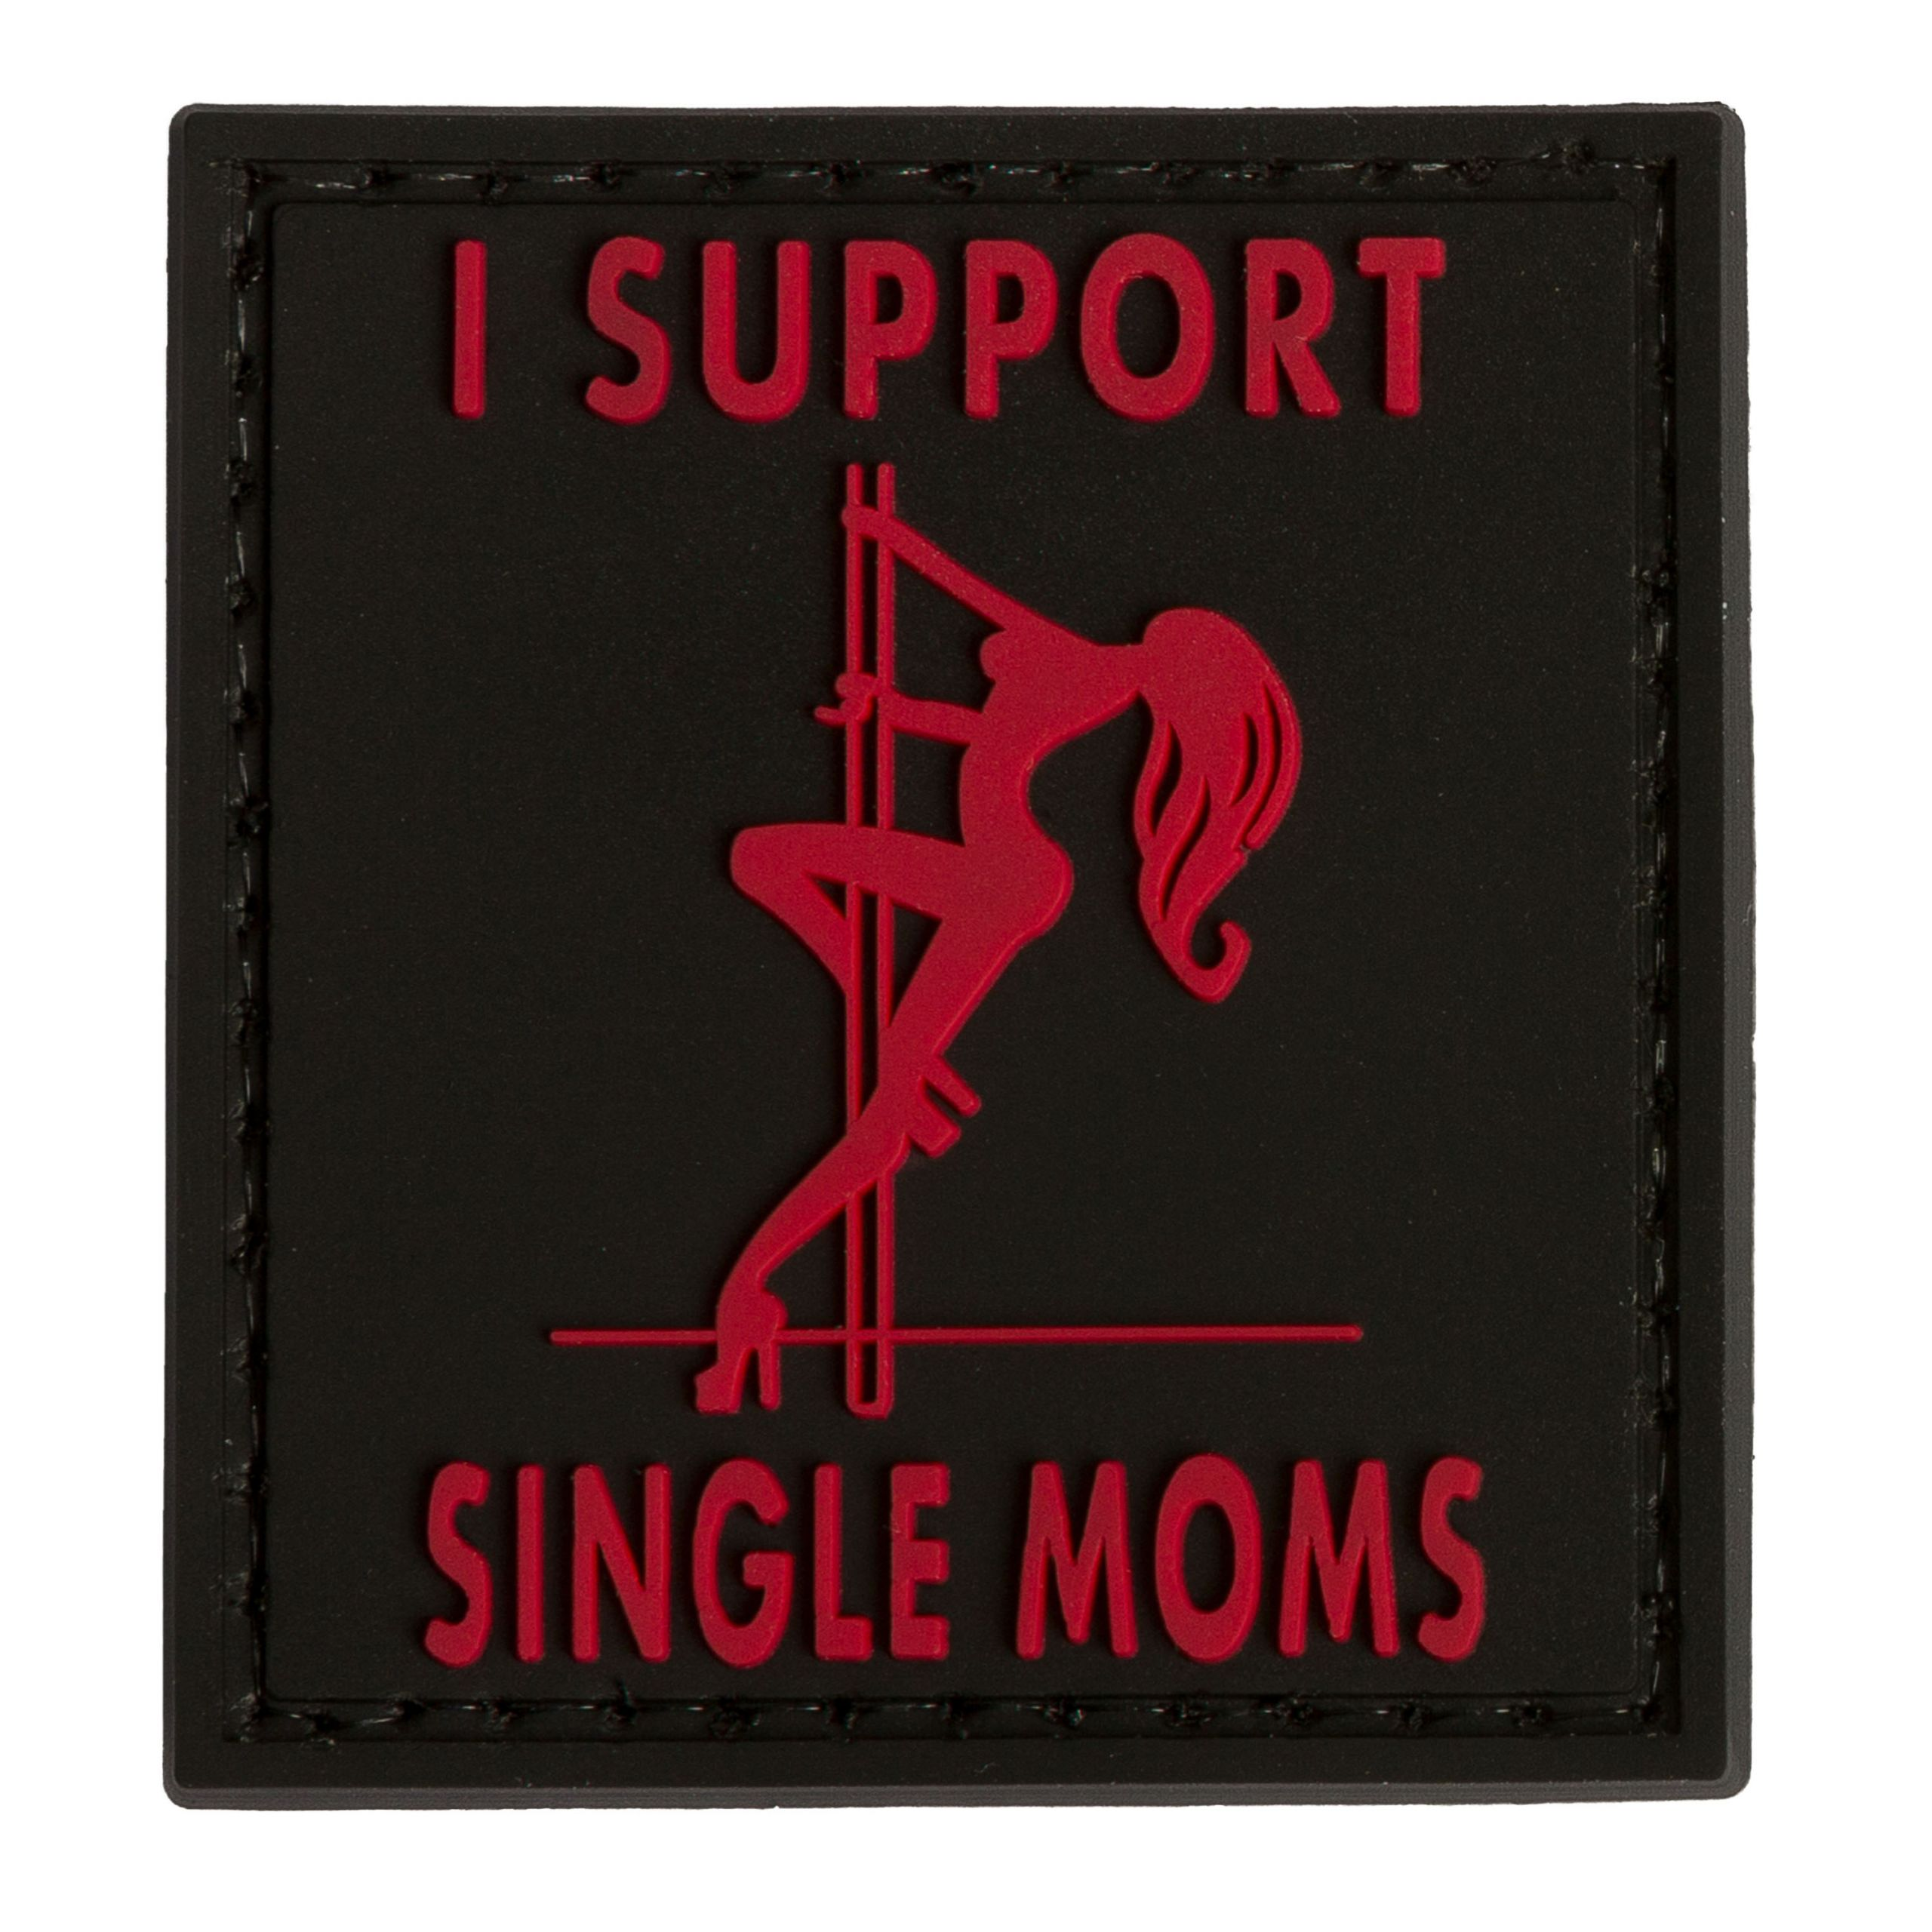 I Support Single Mums Black PVC Airsoft Patch